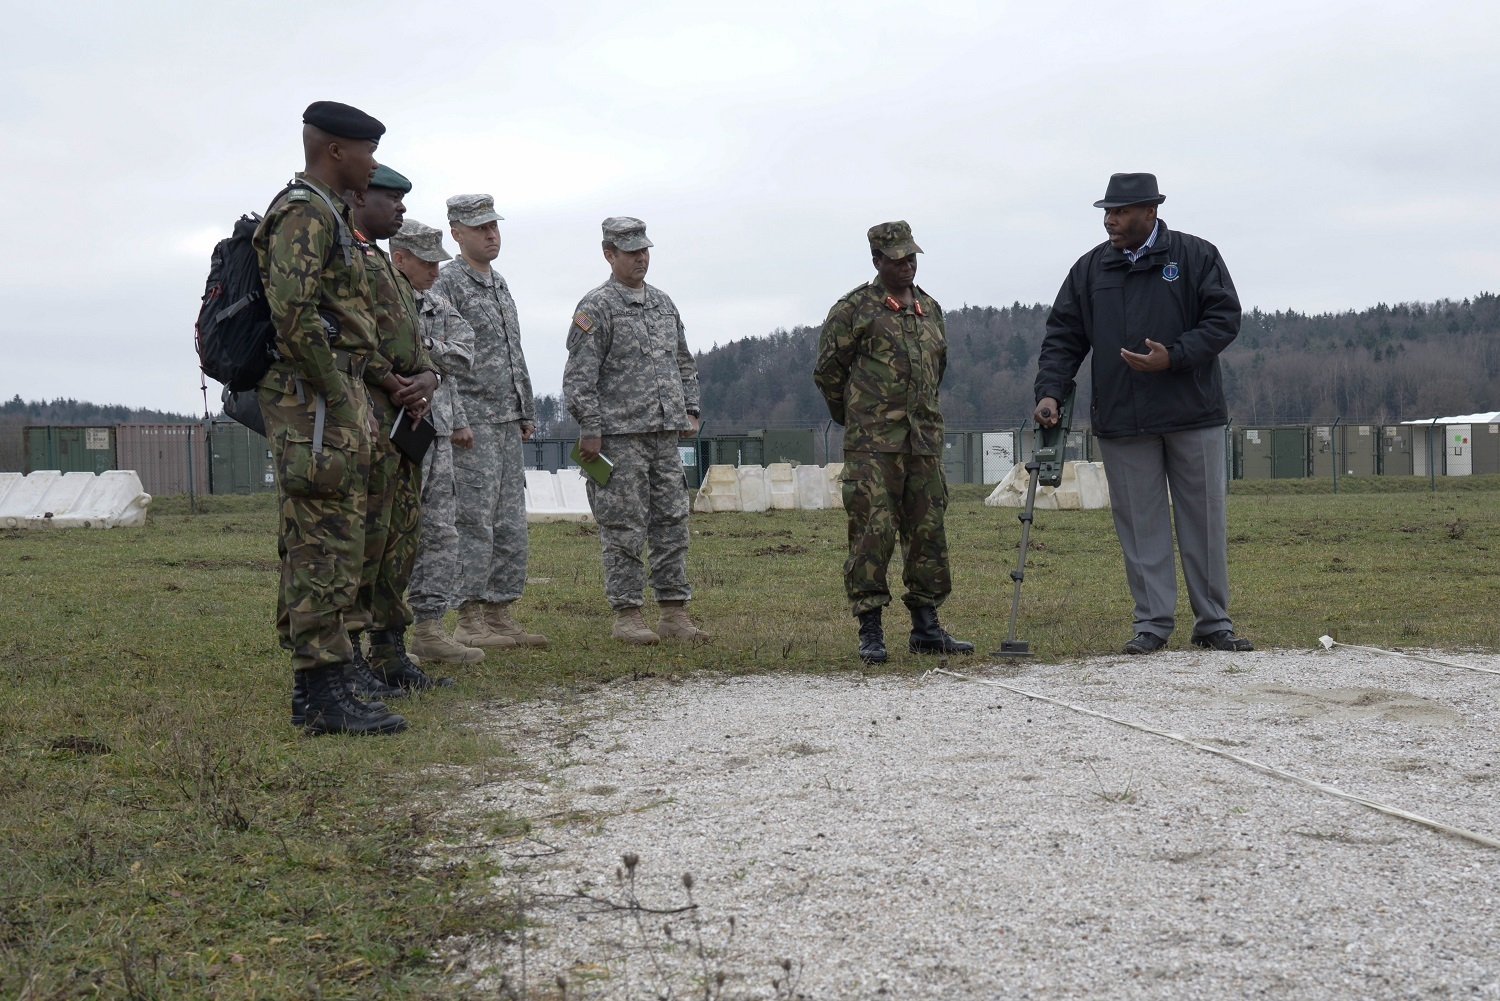 Members of the Botswana Defense Force receive instruction on detecting improvised explosive devices as part of a Counter IED brief during a U.S. Army Africa command sponsored visit to the Joint Multinational Readiness Center in Hohenfels, Germany, Dec. 3, 2015. The visit offered Botswana leadership an opportunity to observe JMTC facilities, as well as explore opportunities for future training and partnership. (U.S. Army photo by Spc. Nathanael Mercado)